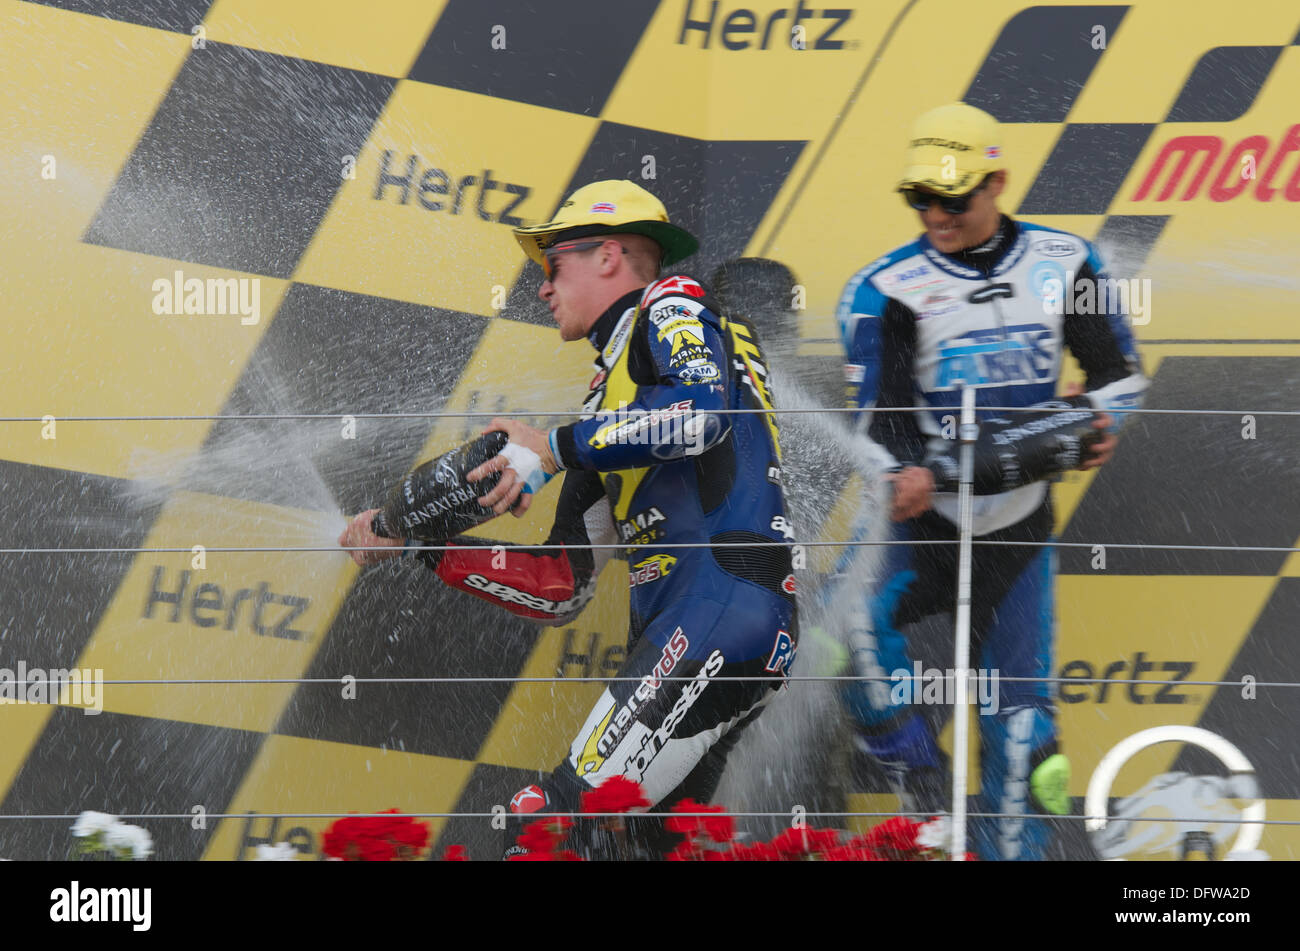 Scott Redding sprays his Champagne on the Silverstone Podium after wining the Moto2 race - Stock Image